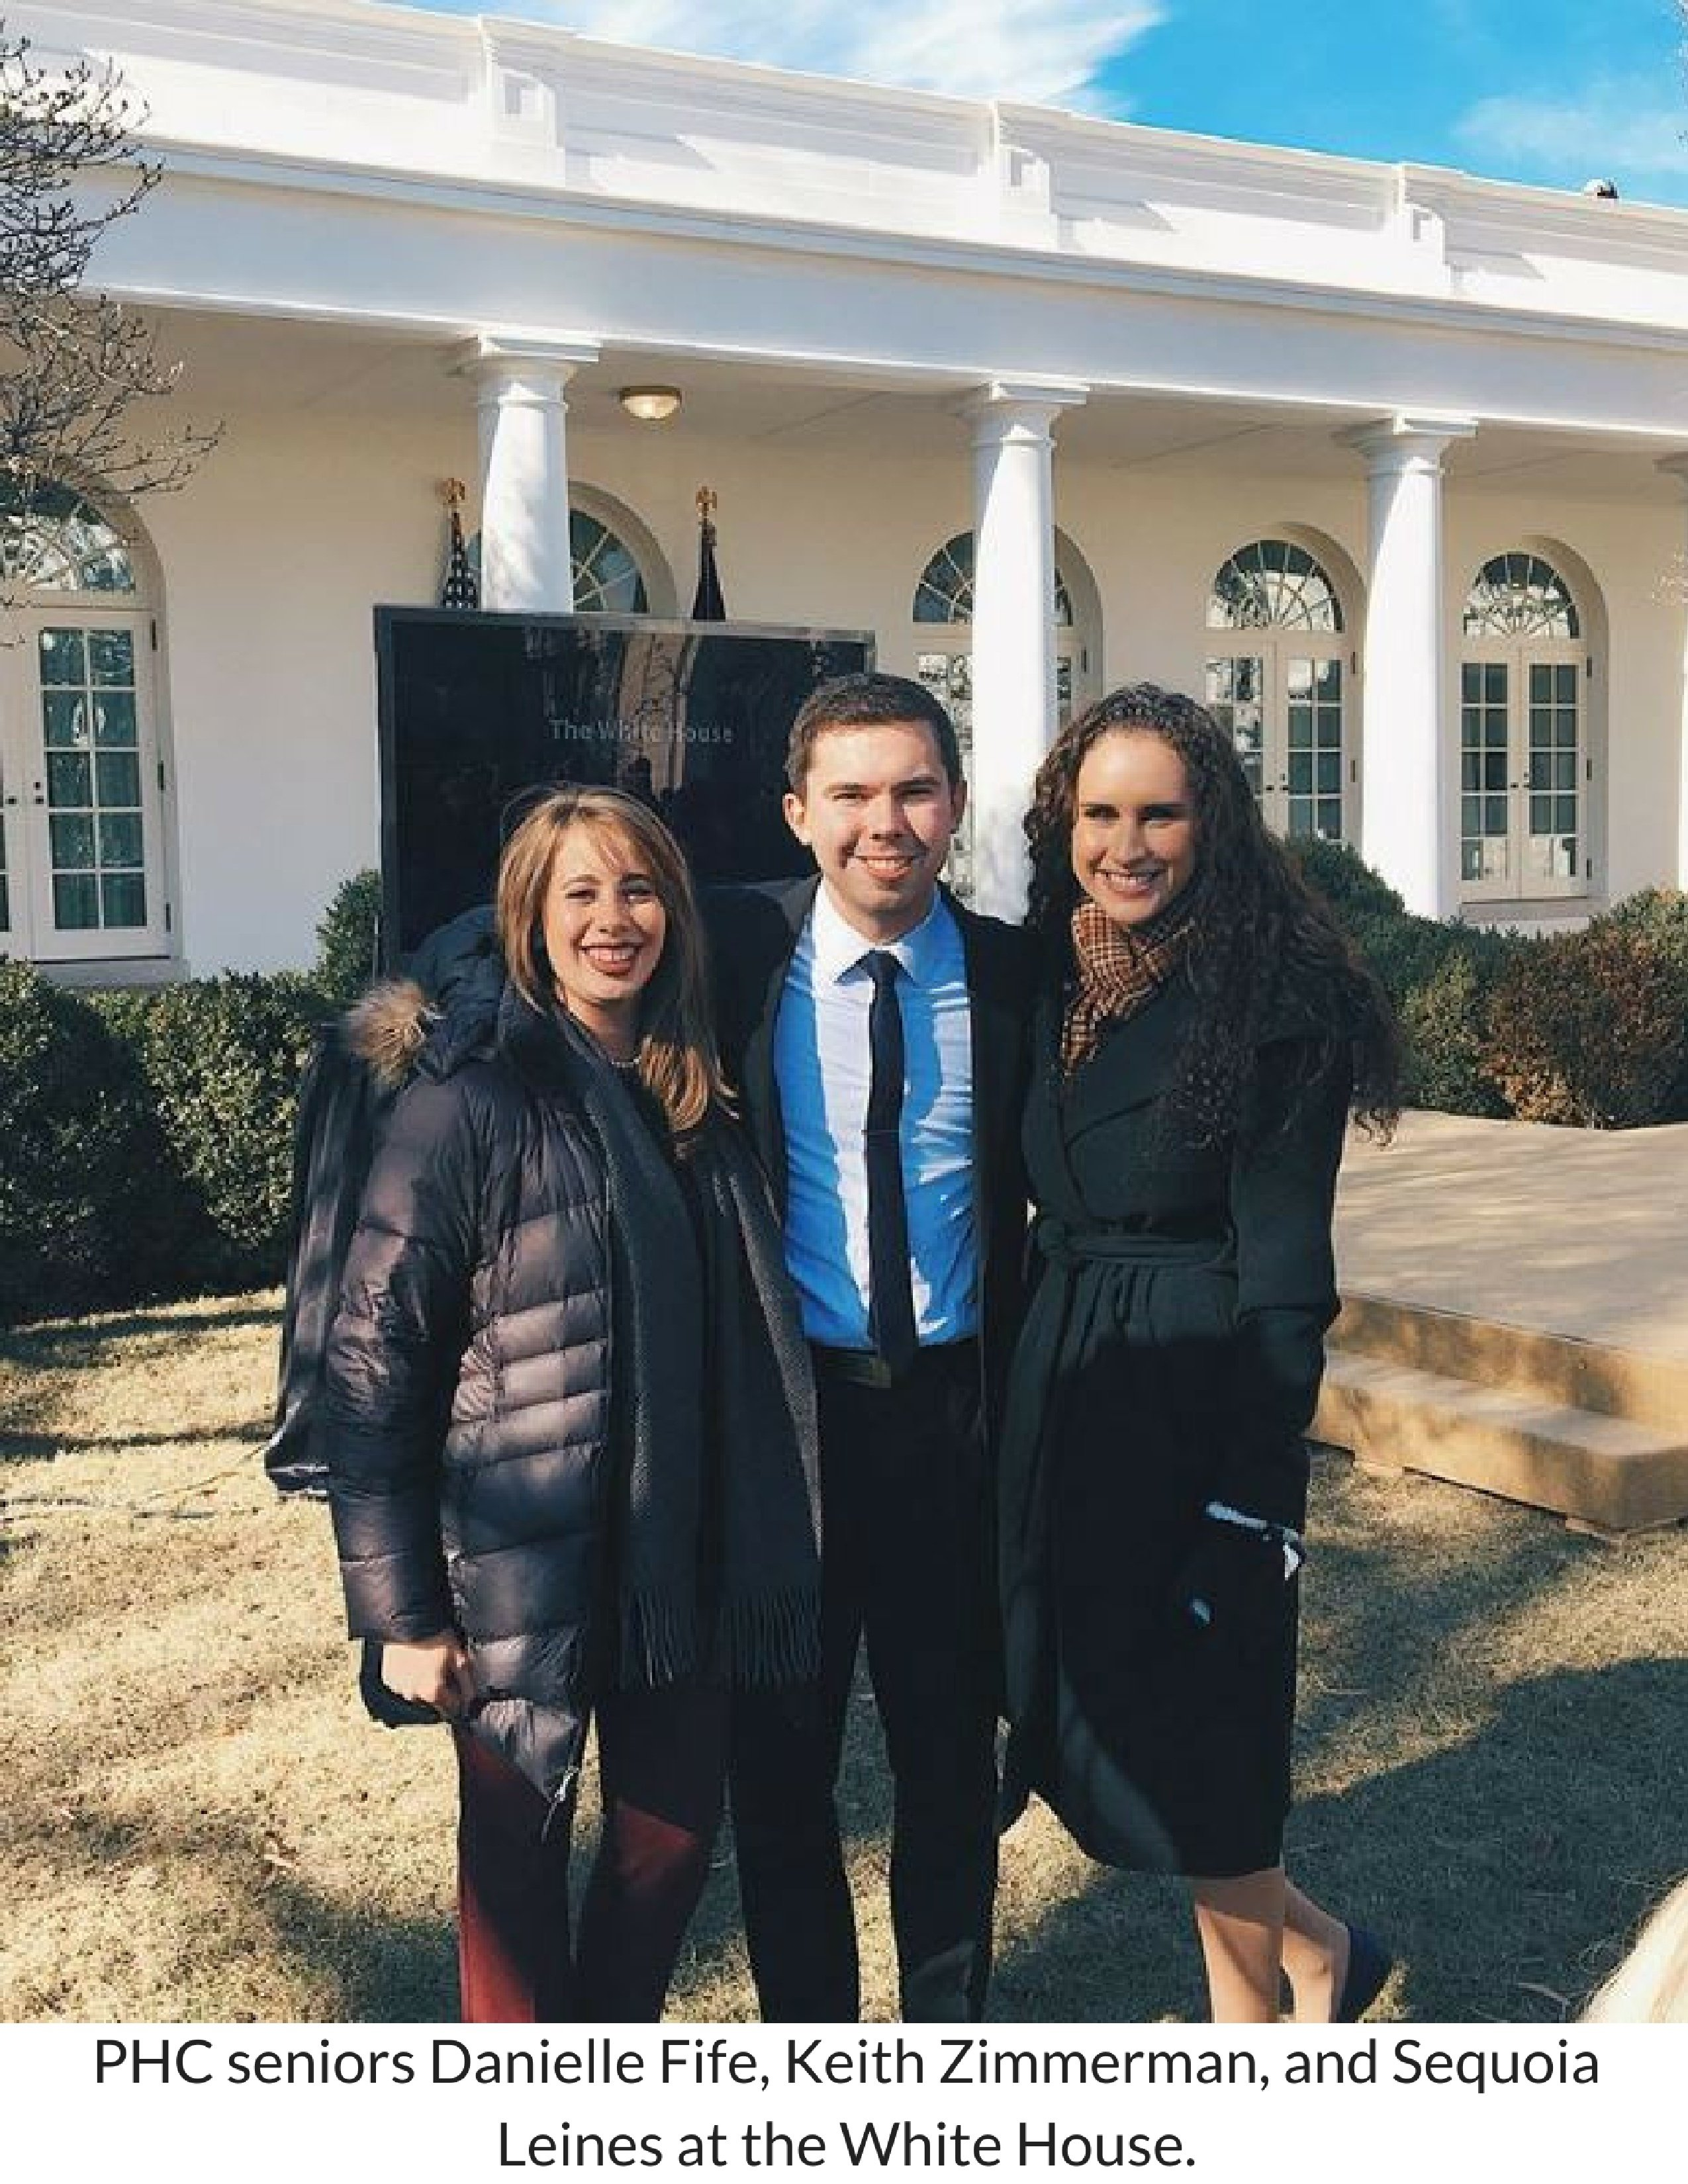 PHC seniors Danielle Fife, Keith Zimmerman, and Sequoia Linesat the White House..jpg